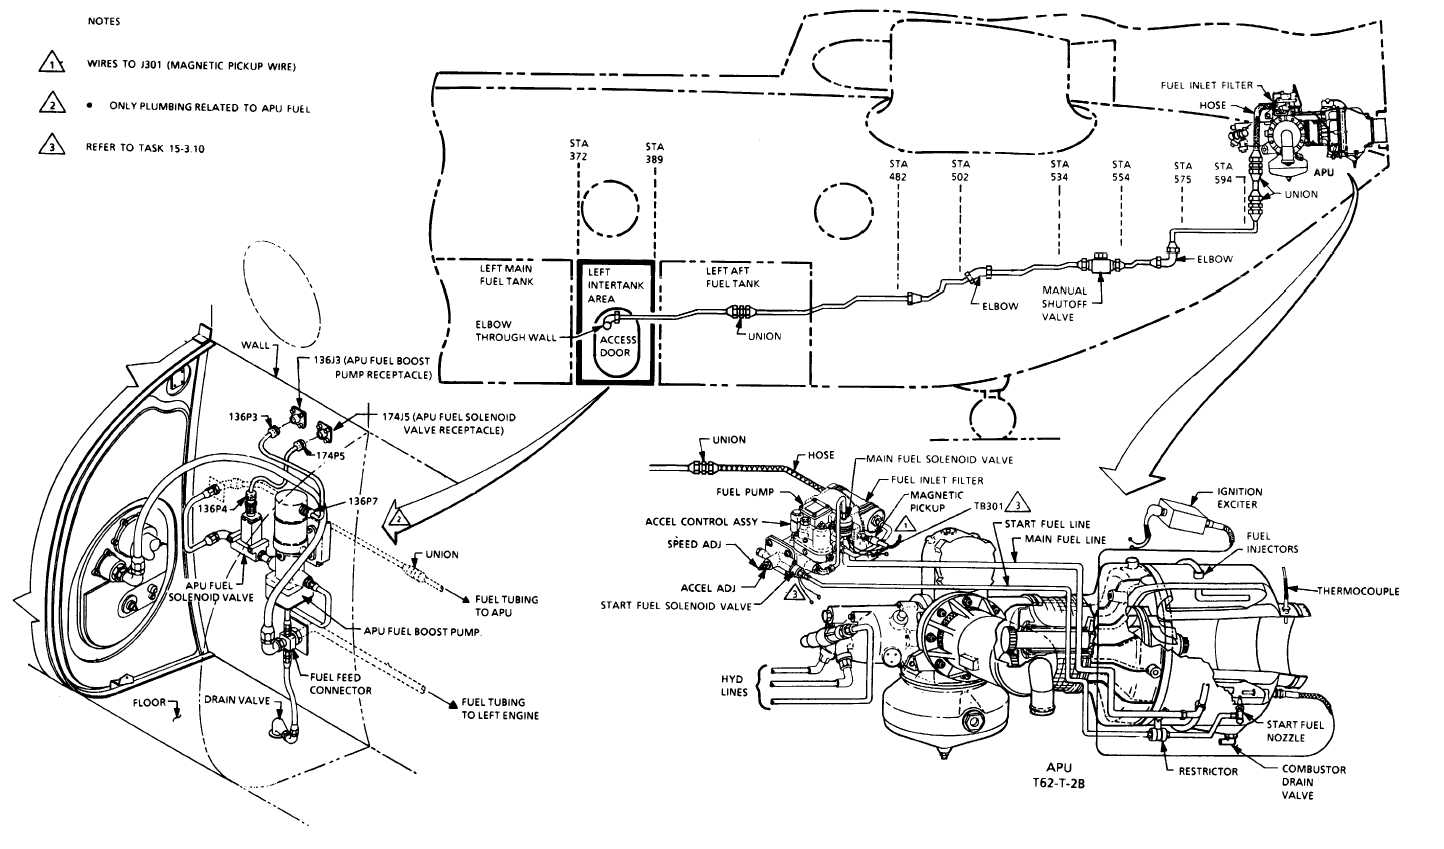 Apu Fuel System Piping Diagram